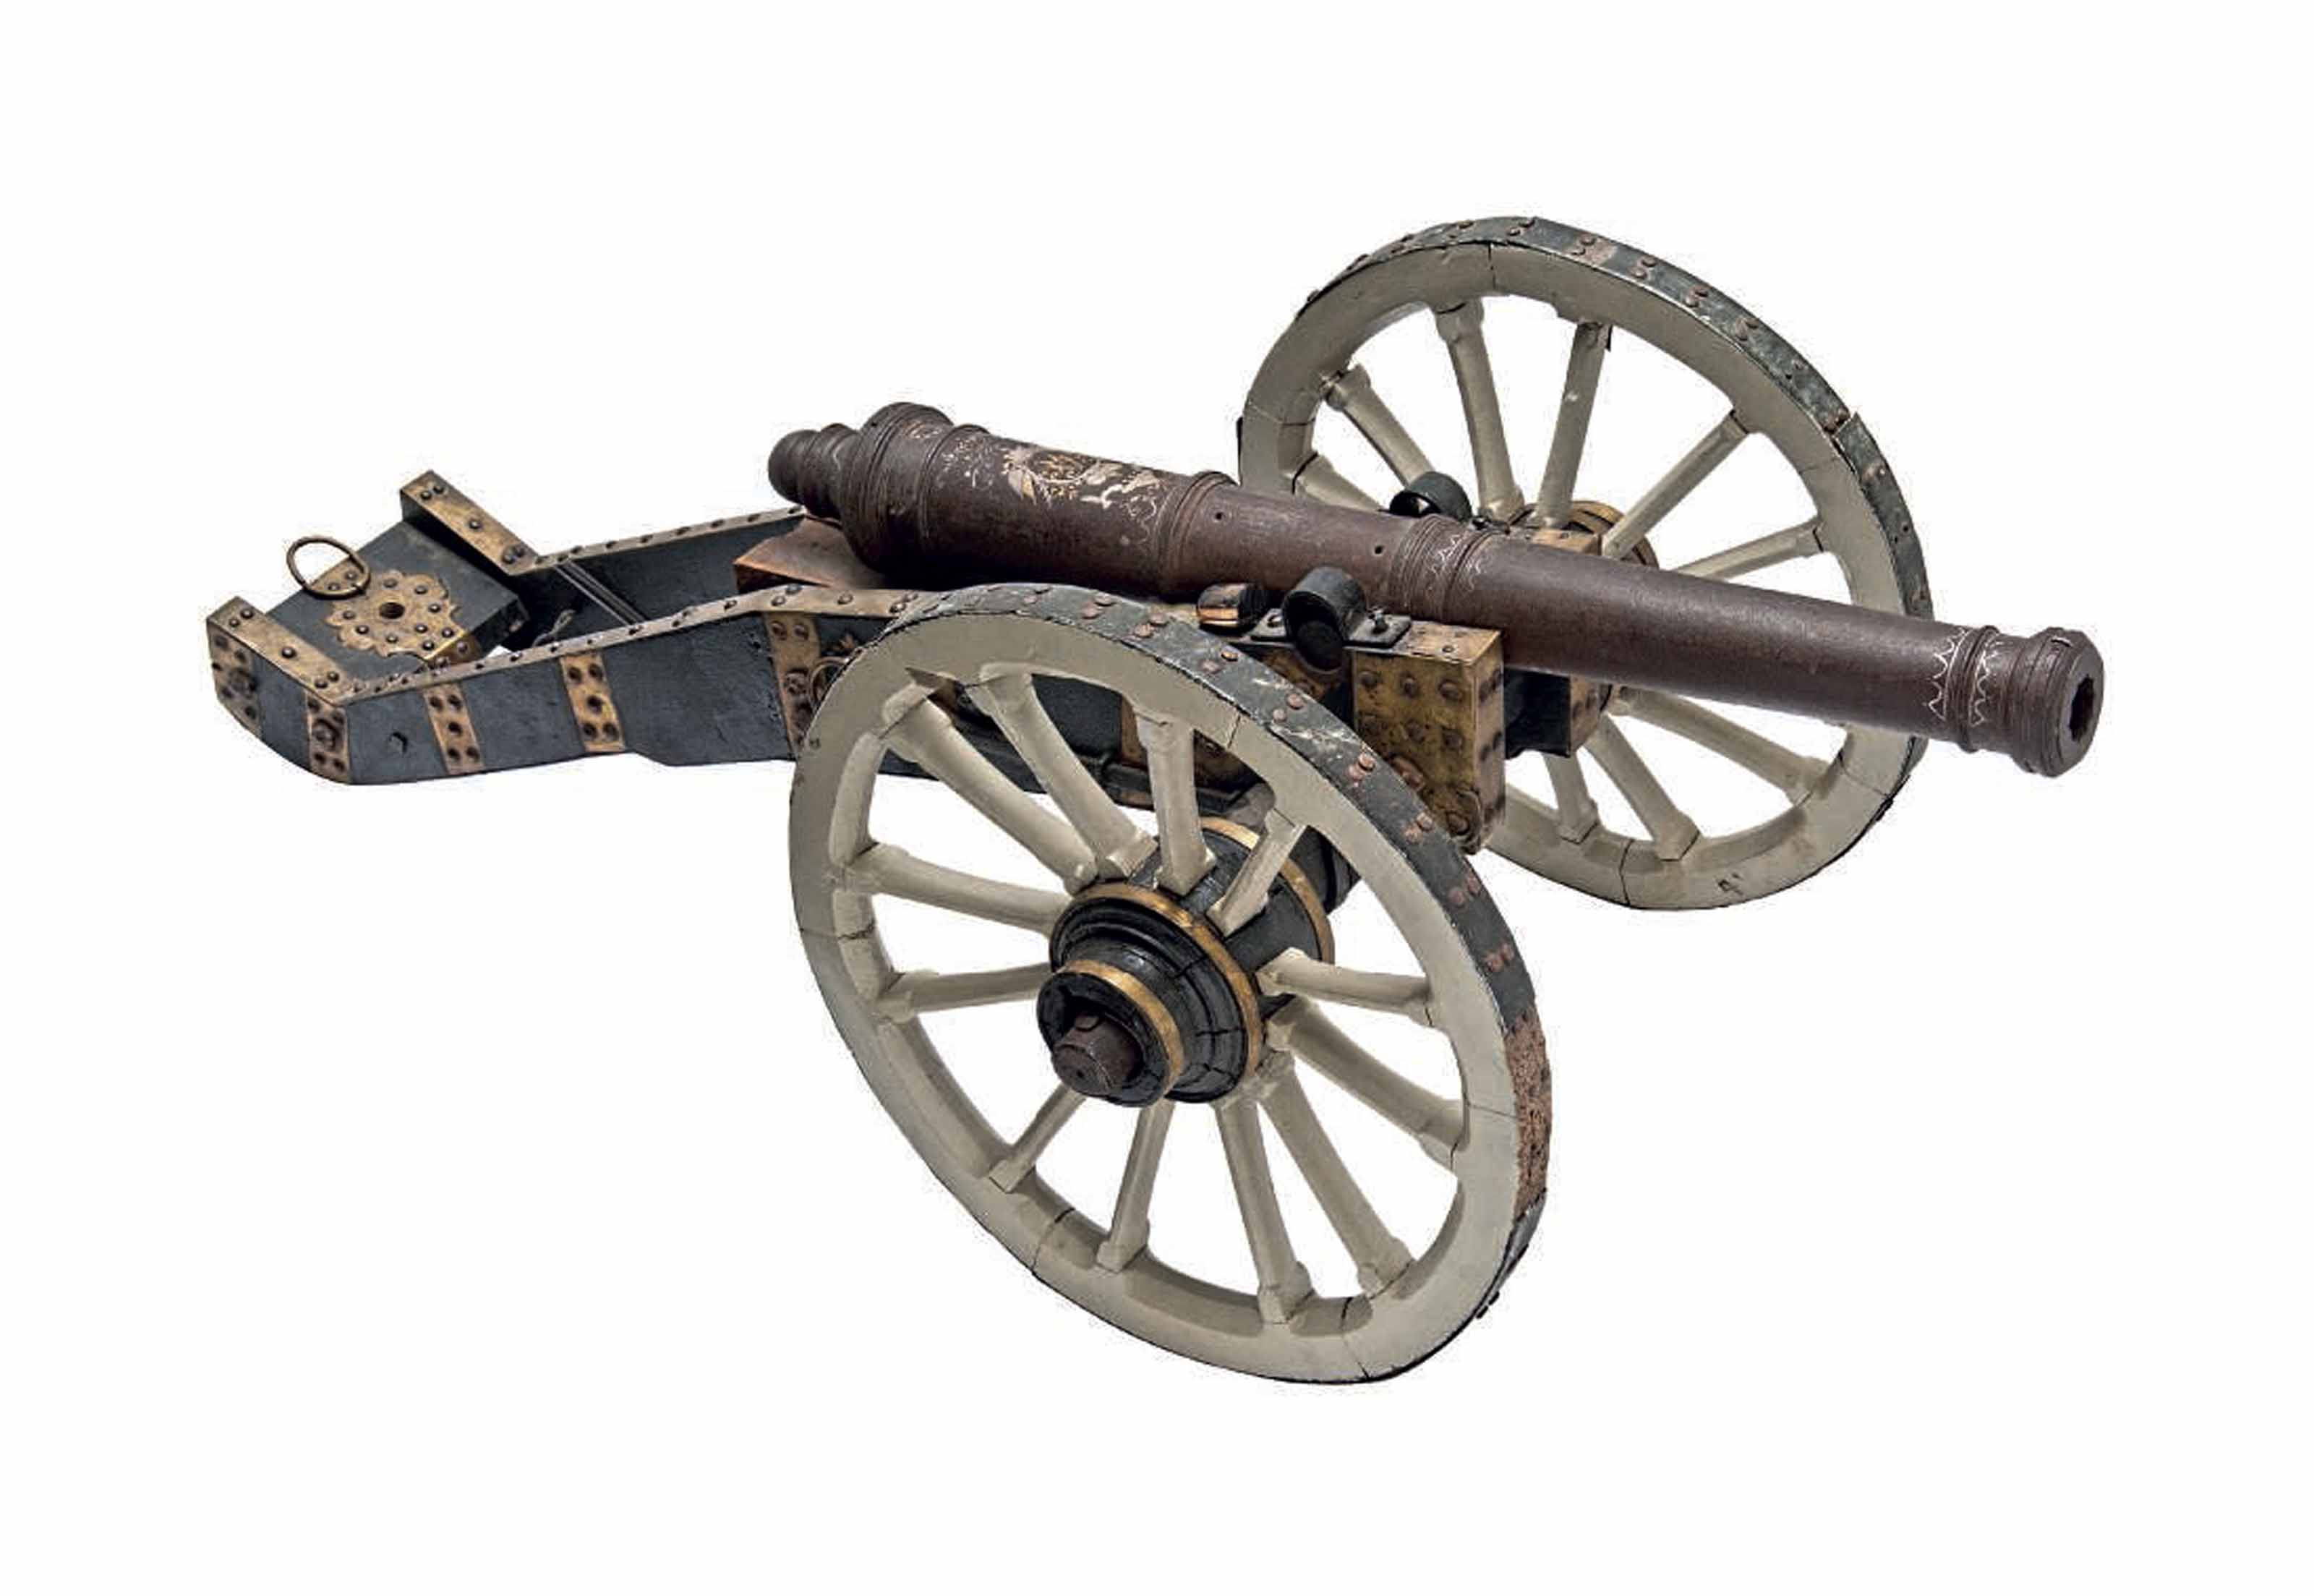 A VERY RARE GERMAN IRON RIFLED CANNON BEARING THE GOLD- AND SILVER-INLAID MONOGRAM OF HERZOG AUGUST WILHELM VON BRAUNSCHWEIG-WOLFENBÜTTEL-BEVERN